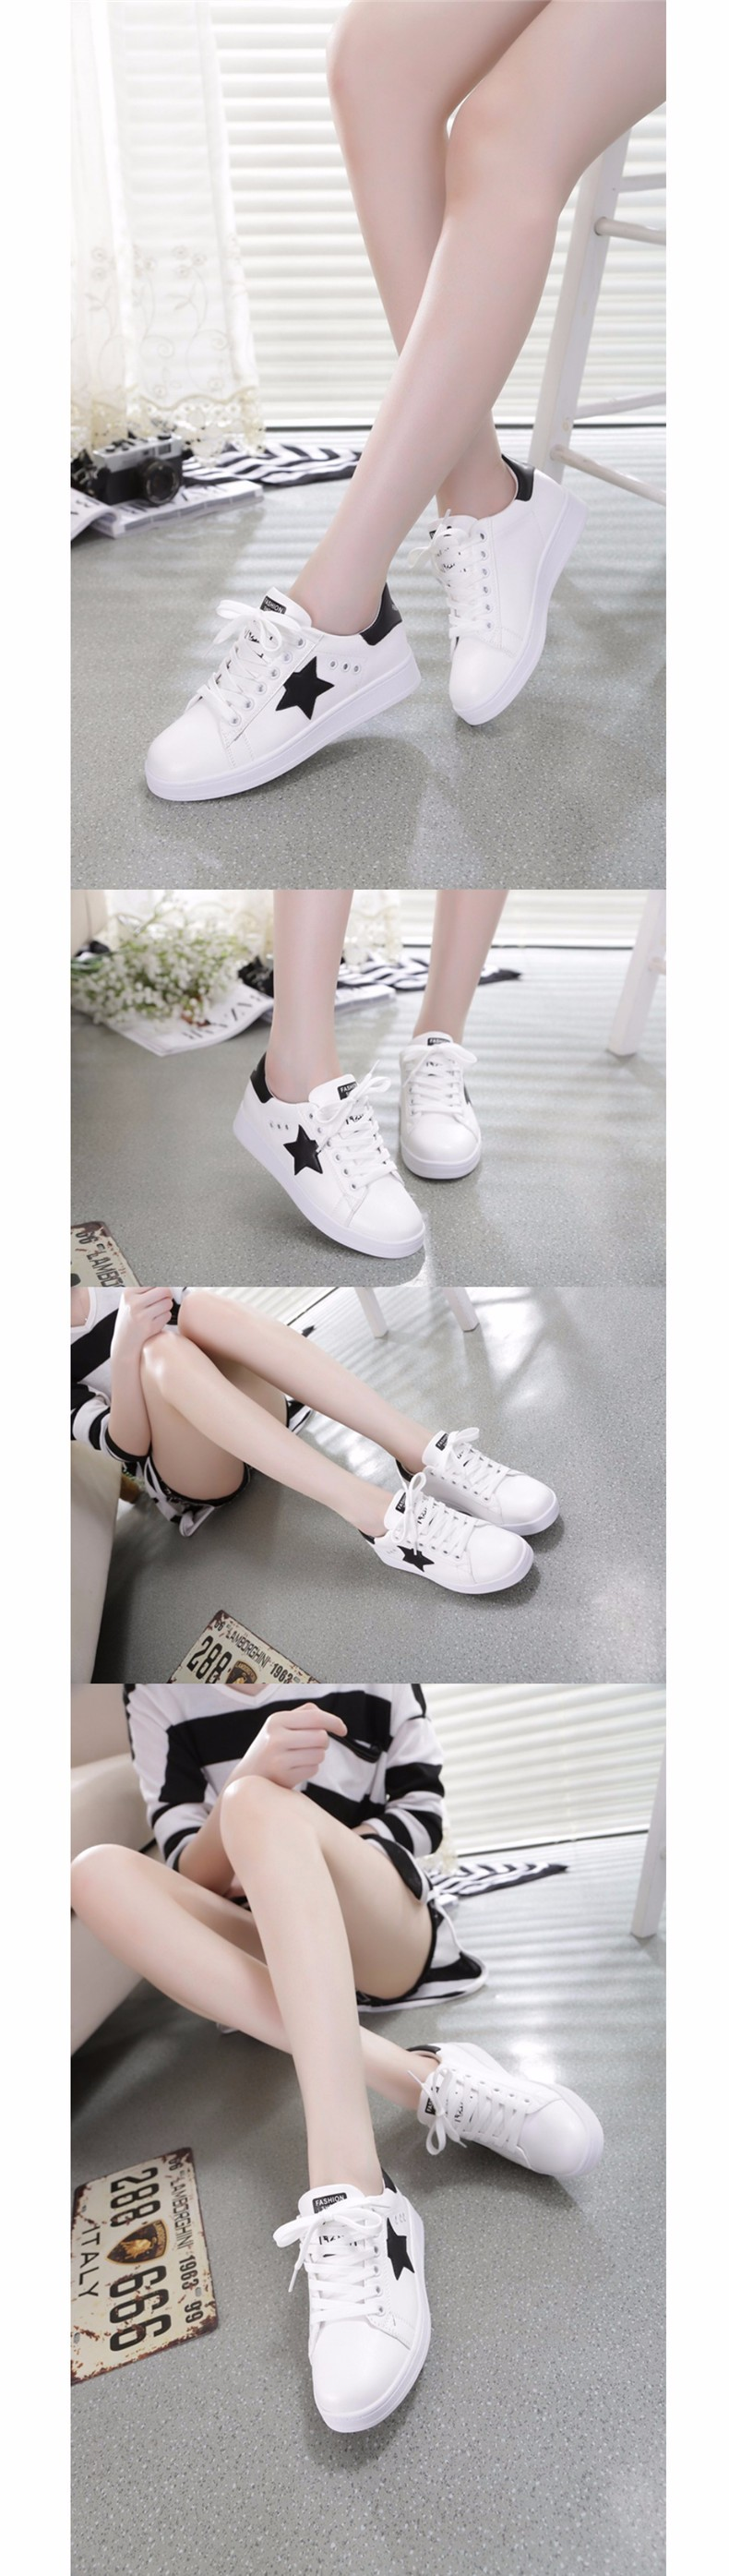 2016 New Spring Summer Ladies Casual Flat Shoes Women's White Basket Femme Sapatos Femininos